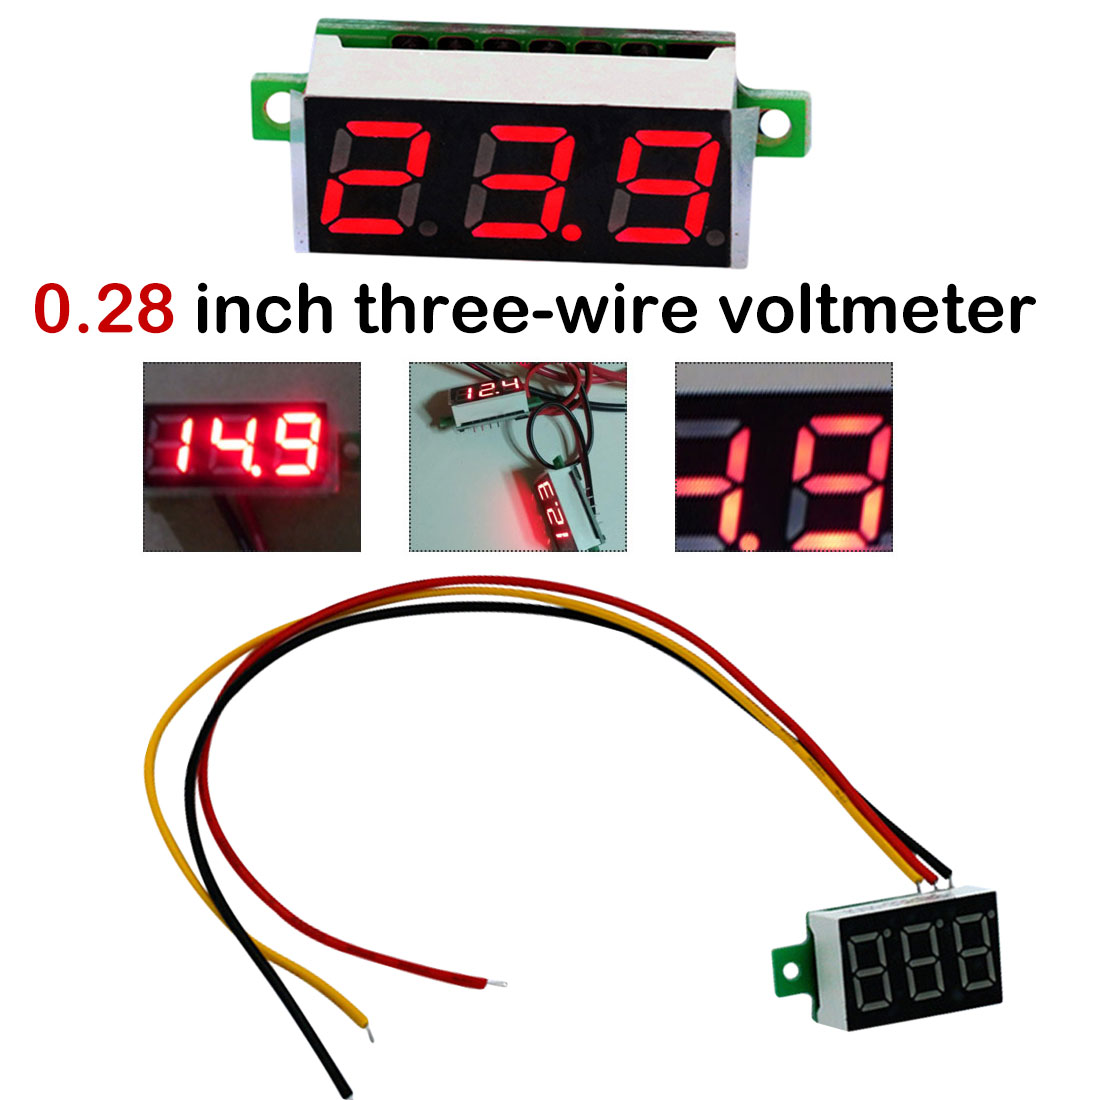 Mini 0.36 Inch DC 0-100v 3 Bits Digital LED Display Panel Voltage Meter Voltmeter Electronic Tester